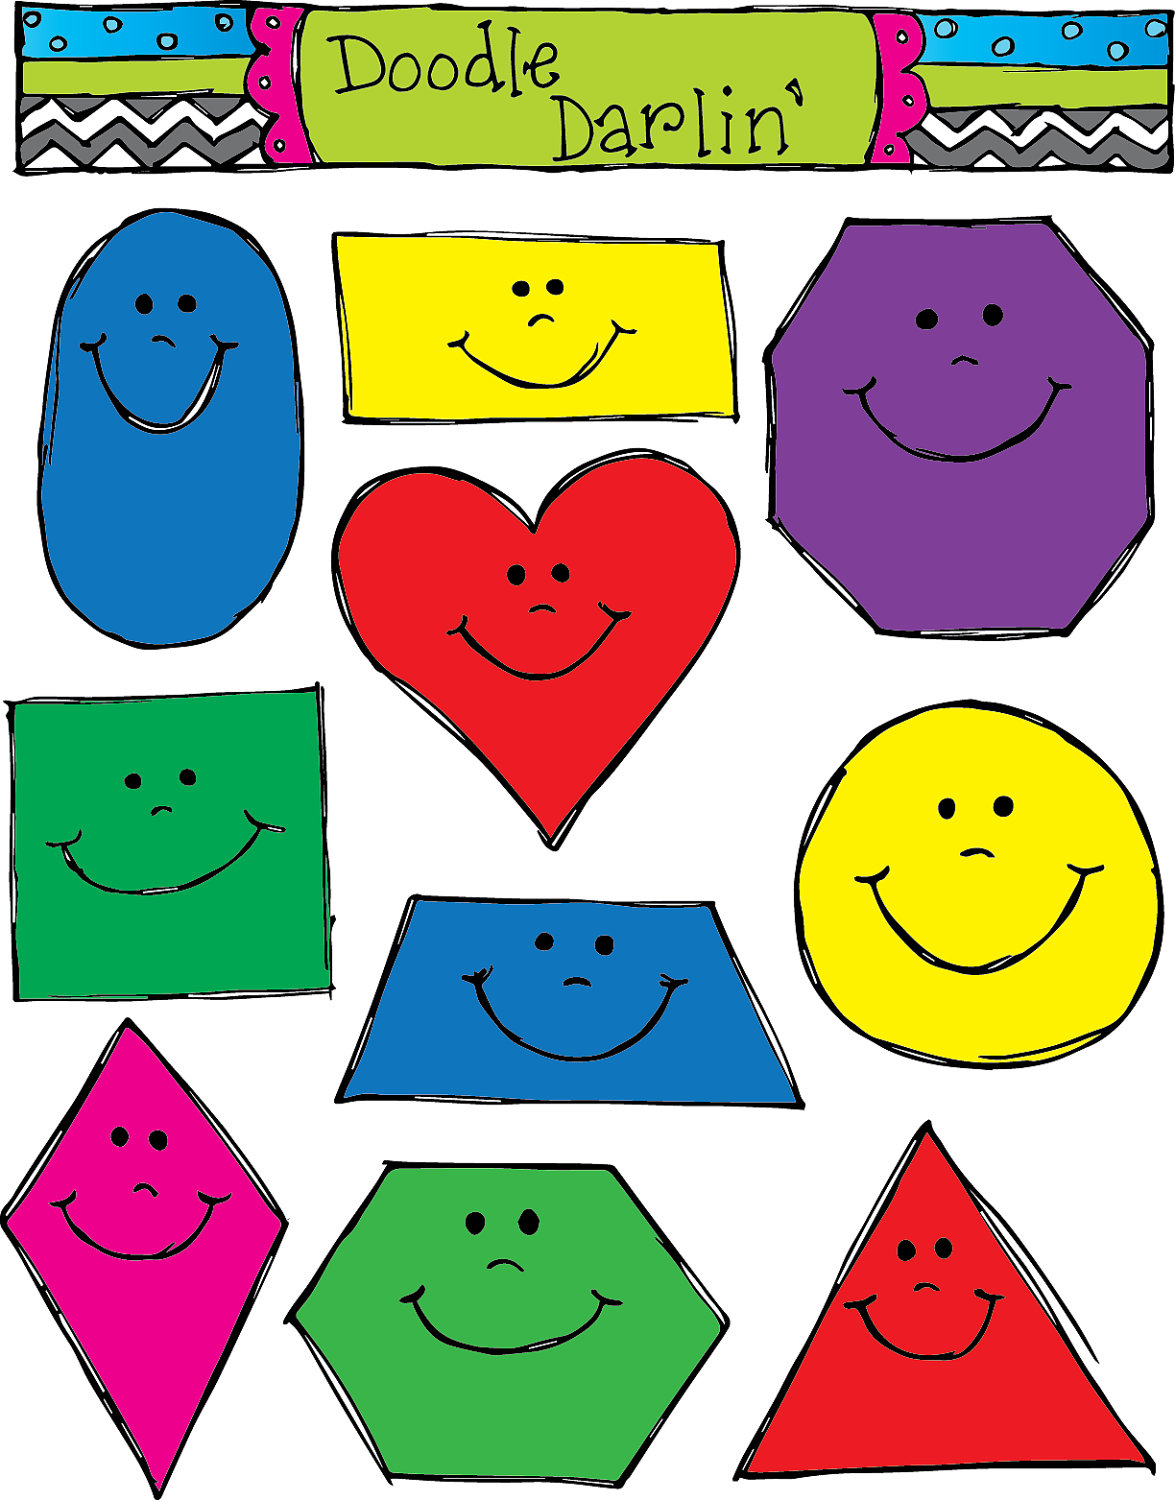 Free shapes clipart vector library library Free Basic Shapes Cliparts, Download Free Clip Art, Free Clip Art on ... vector library library